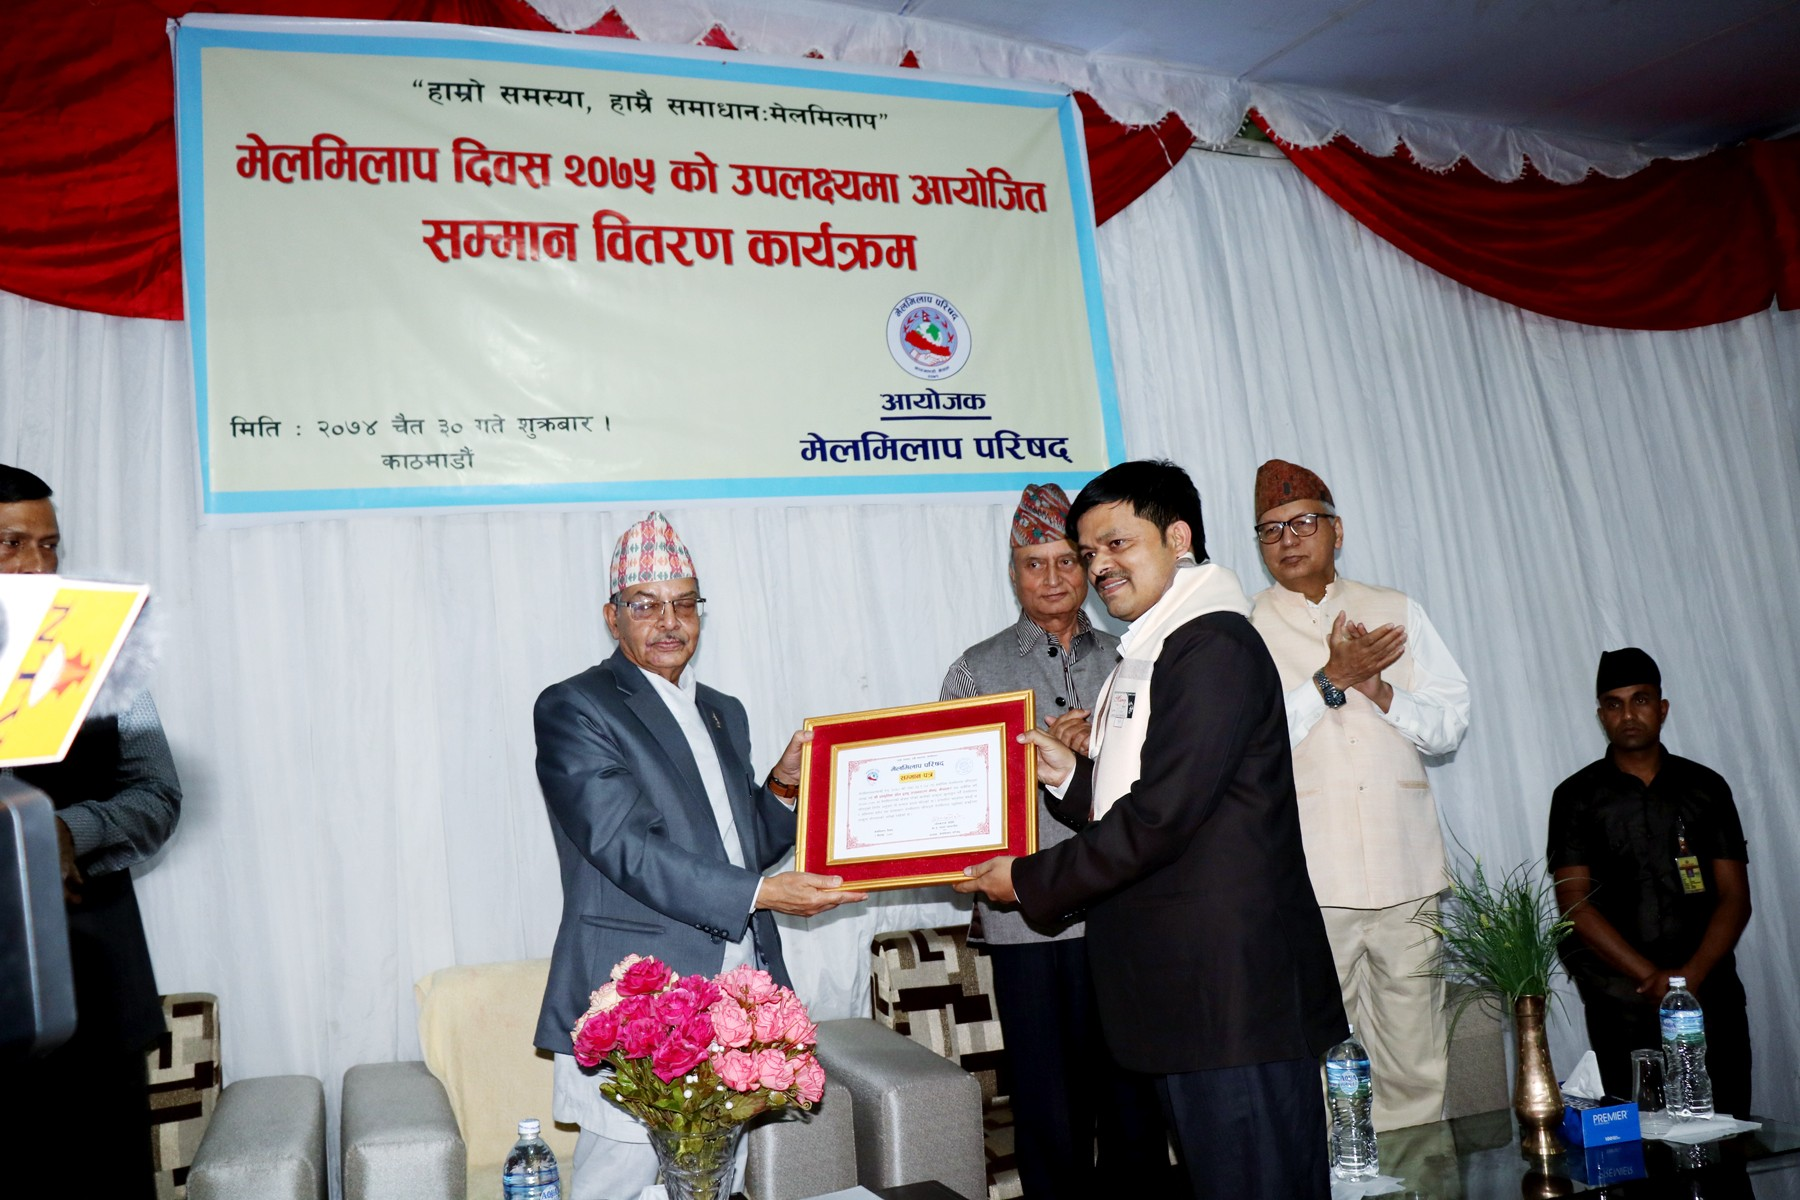 Mediation Council of Nepal felicitated NRCTC as the best organization working in peacebuilding sector of Nepal.